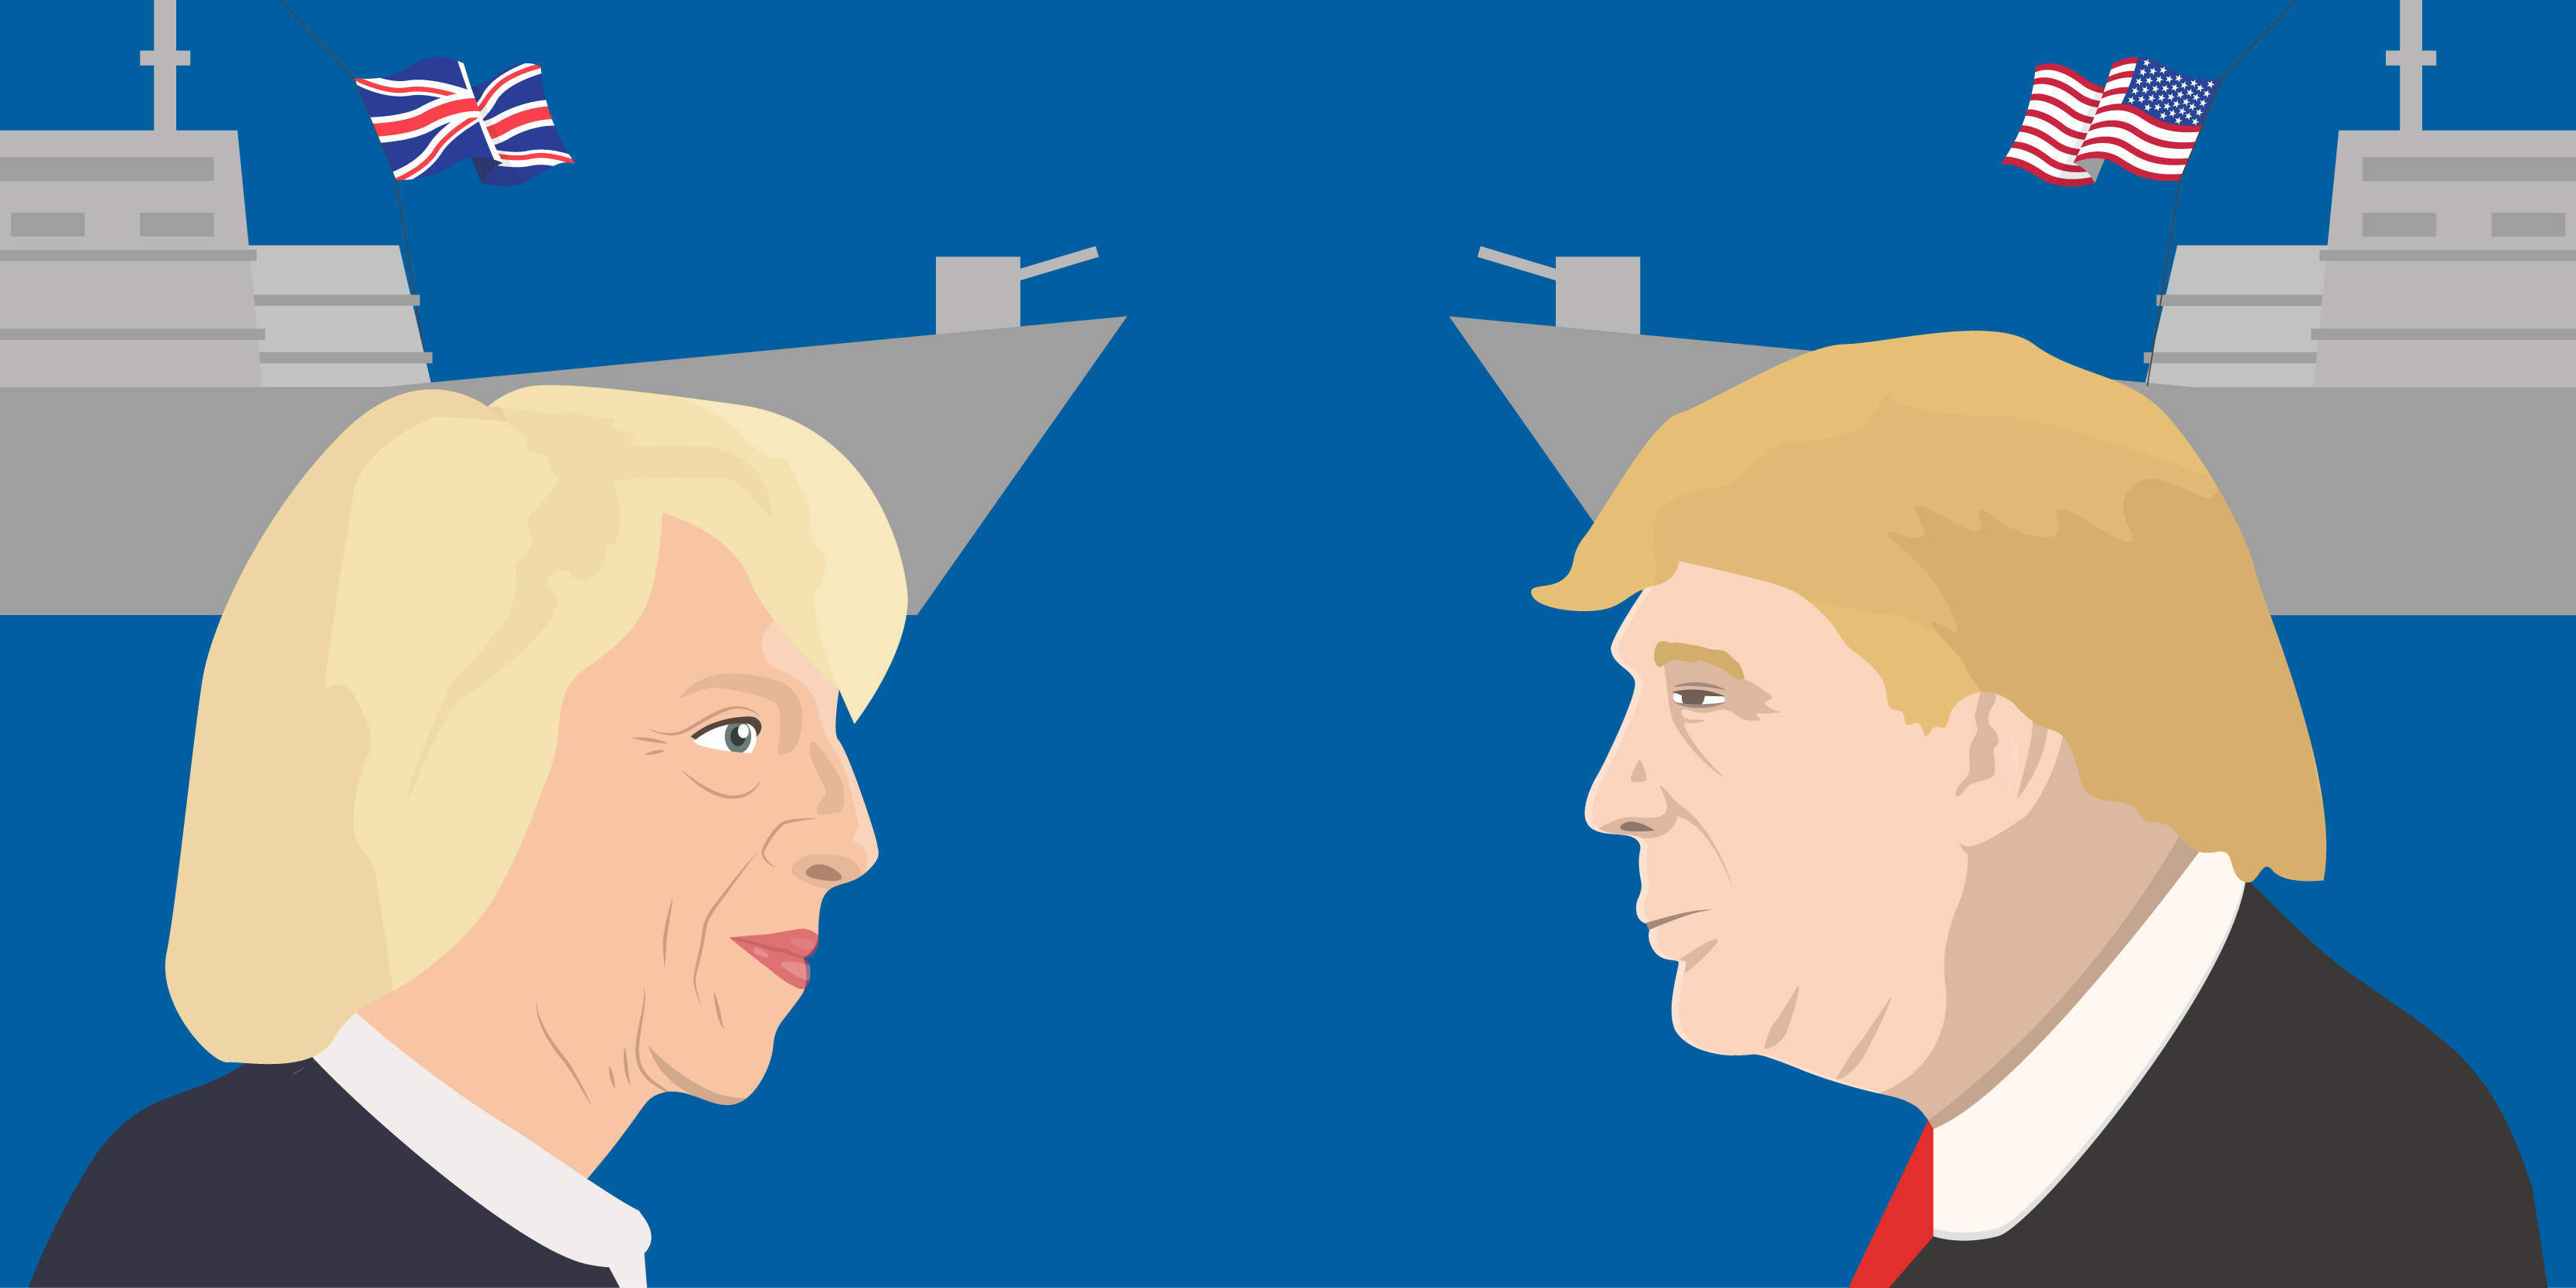 Theresa May is meeting Donald Trump today — a win for feminism?